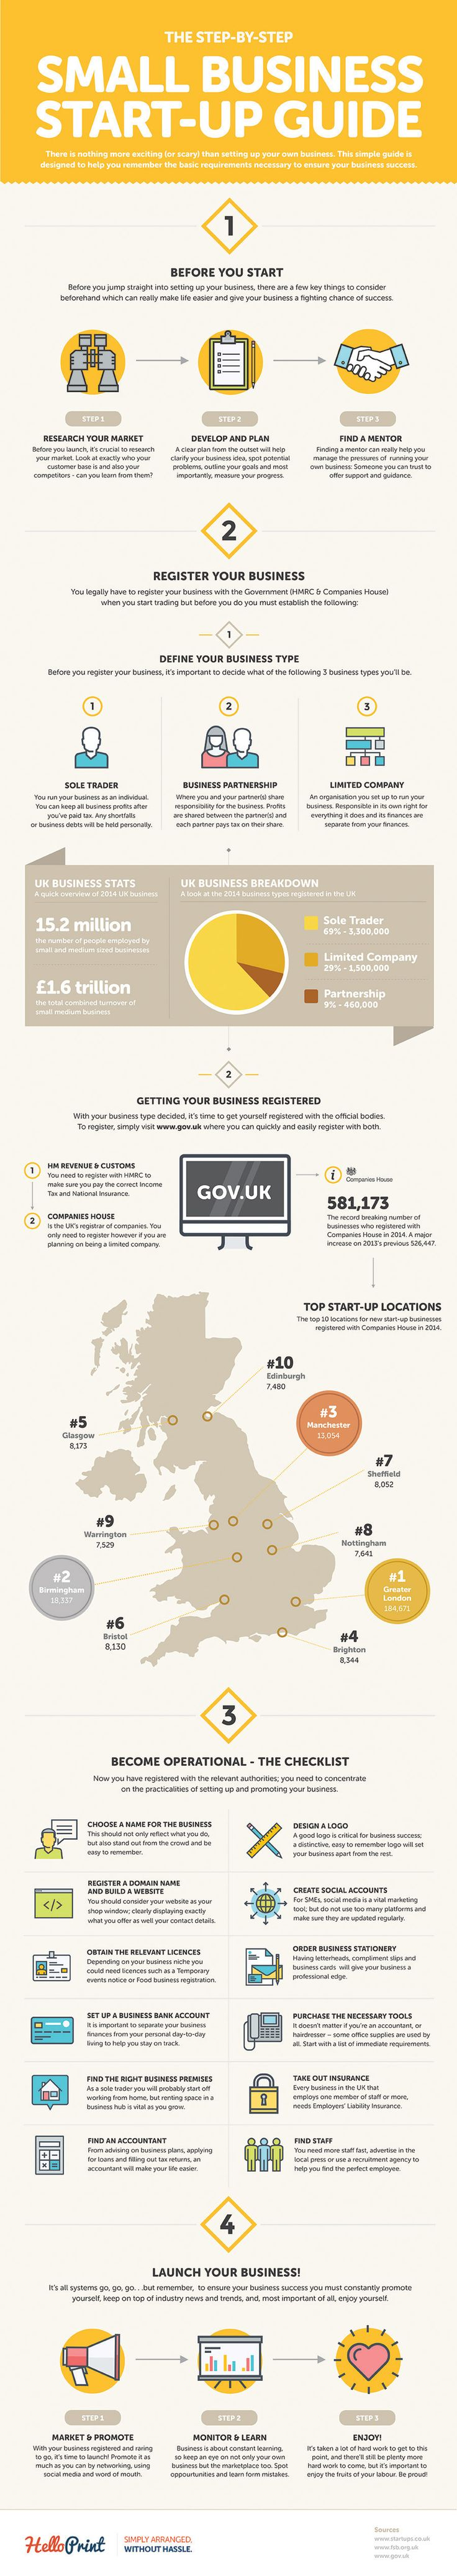 The Step-By-Step Small Business Start-Up Guide - #infographic